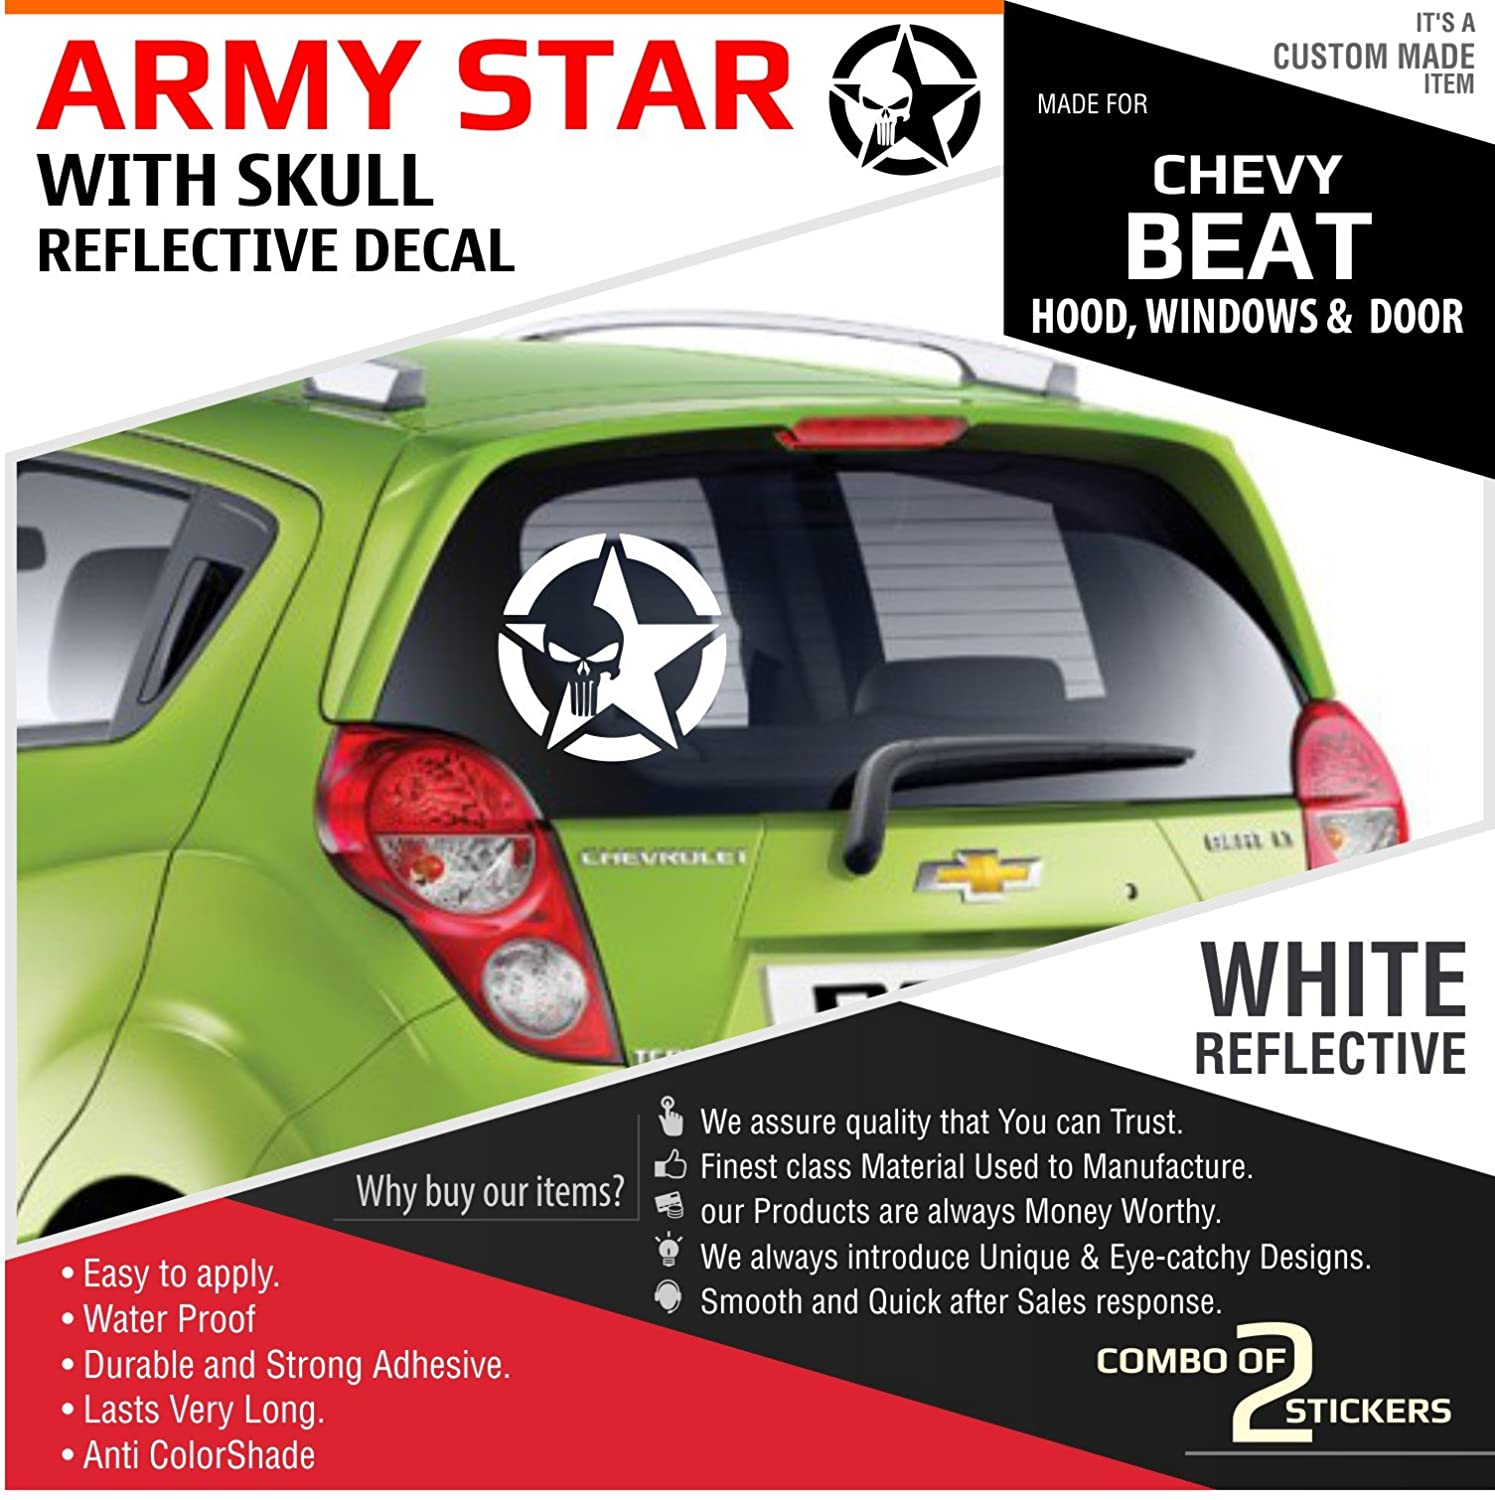 Army star with skull reflective decal sticker amazon in car motorbike